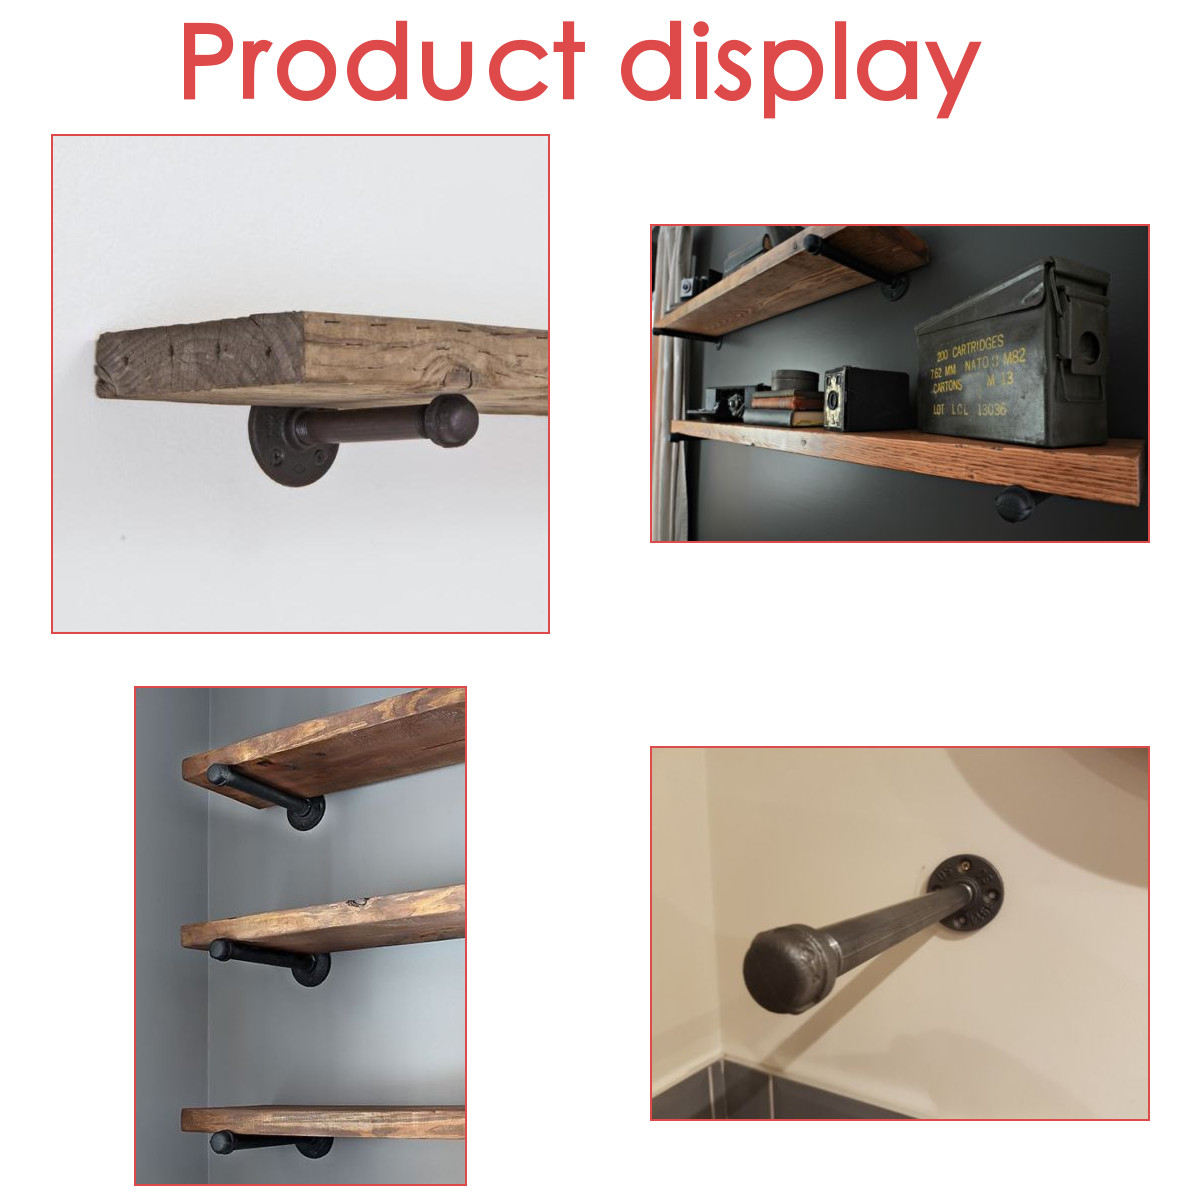 280mm Length Iron Industrial Pipe Holder Flange Bracket Shelf for Toilet Paper Support